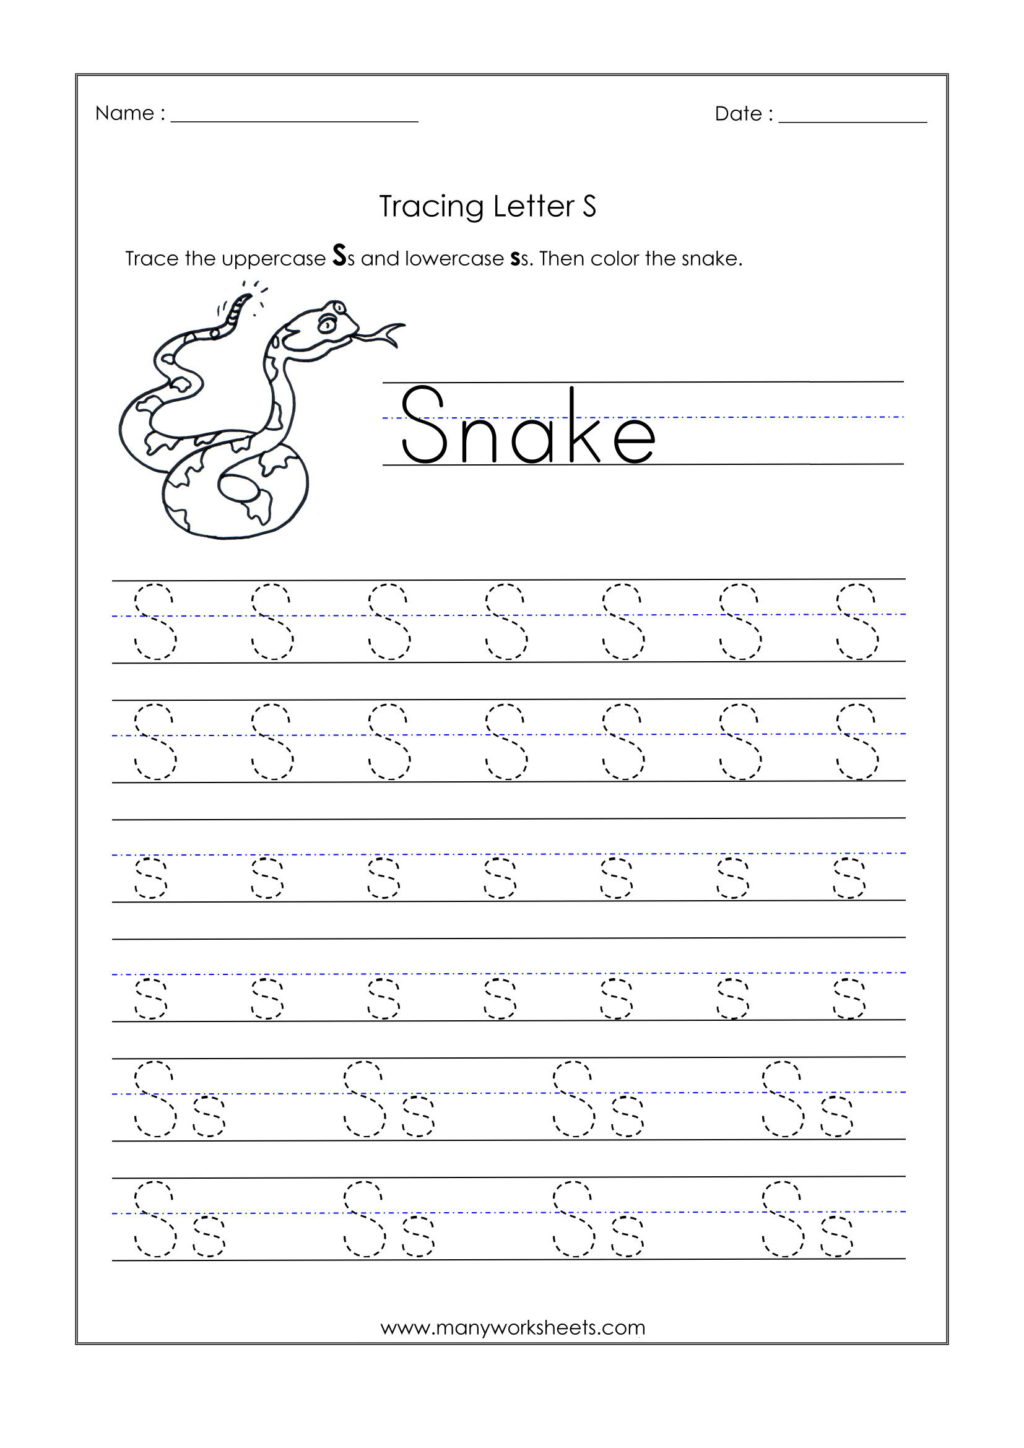 Math Worksheet ~ Letter S Tracing Worksheet Kindergarten